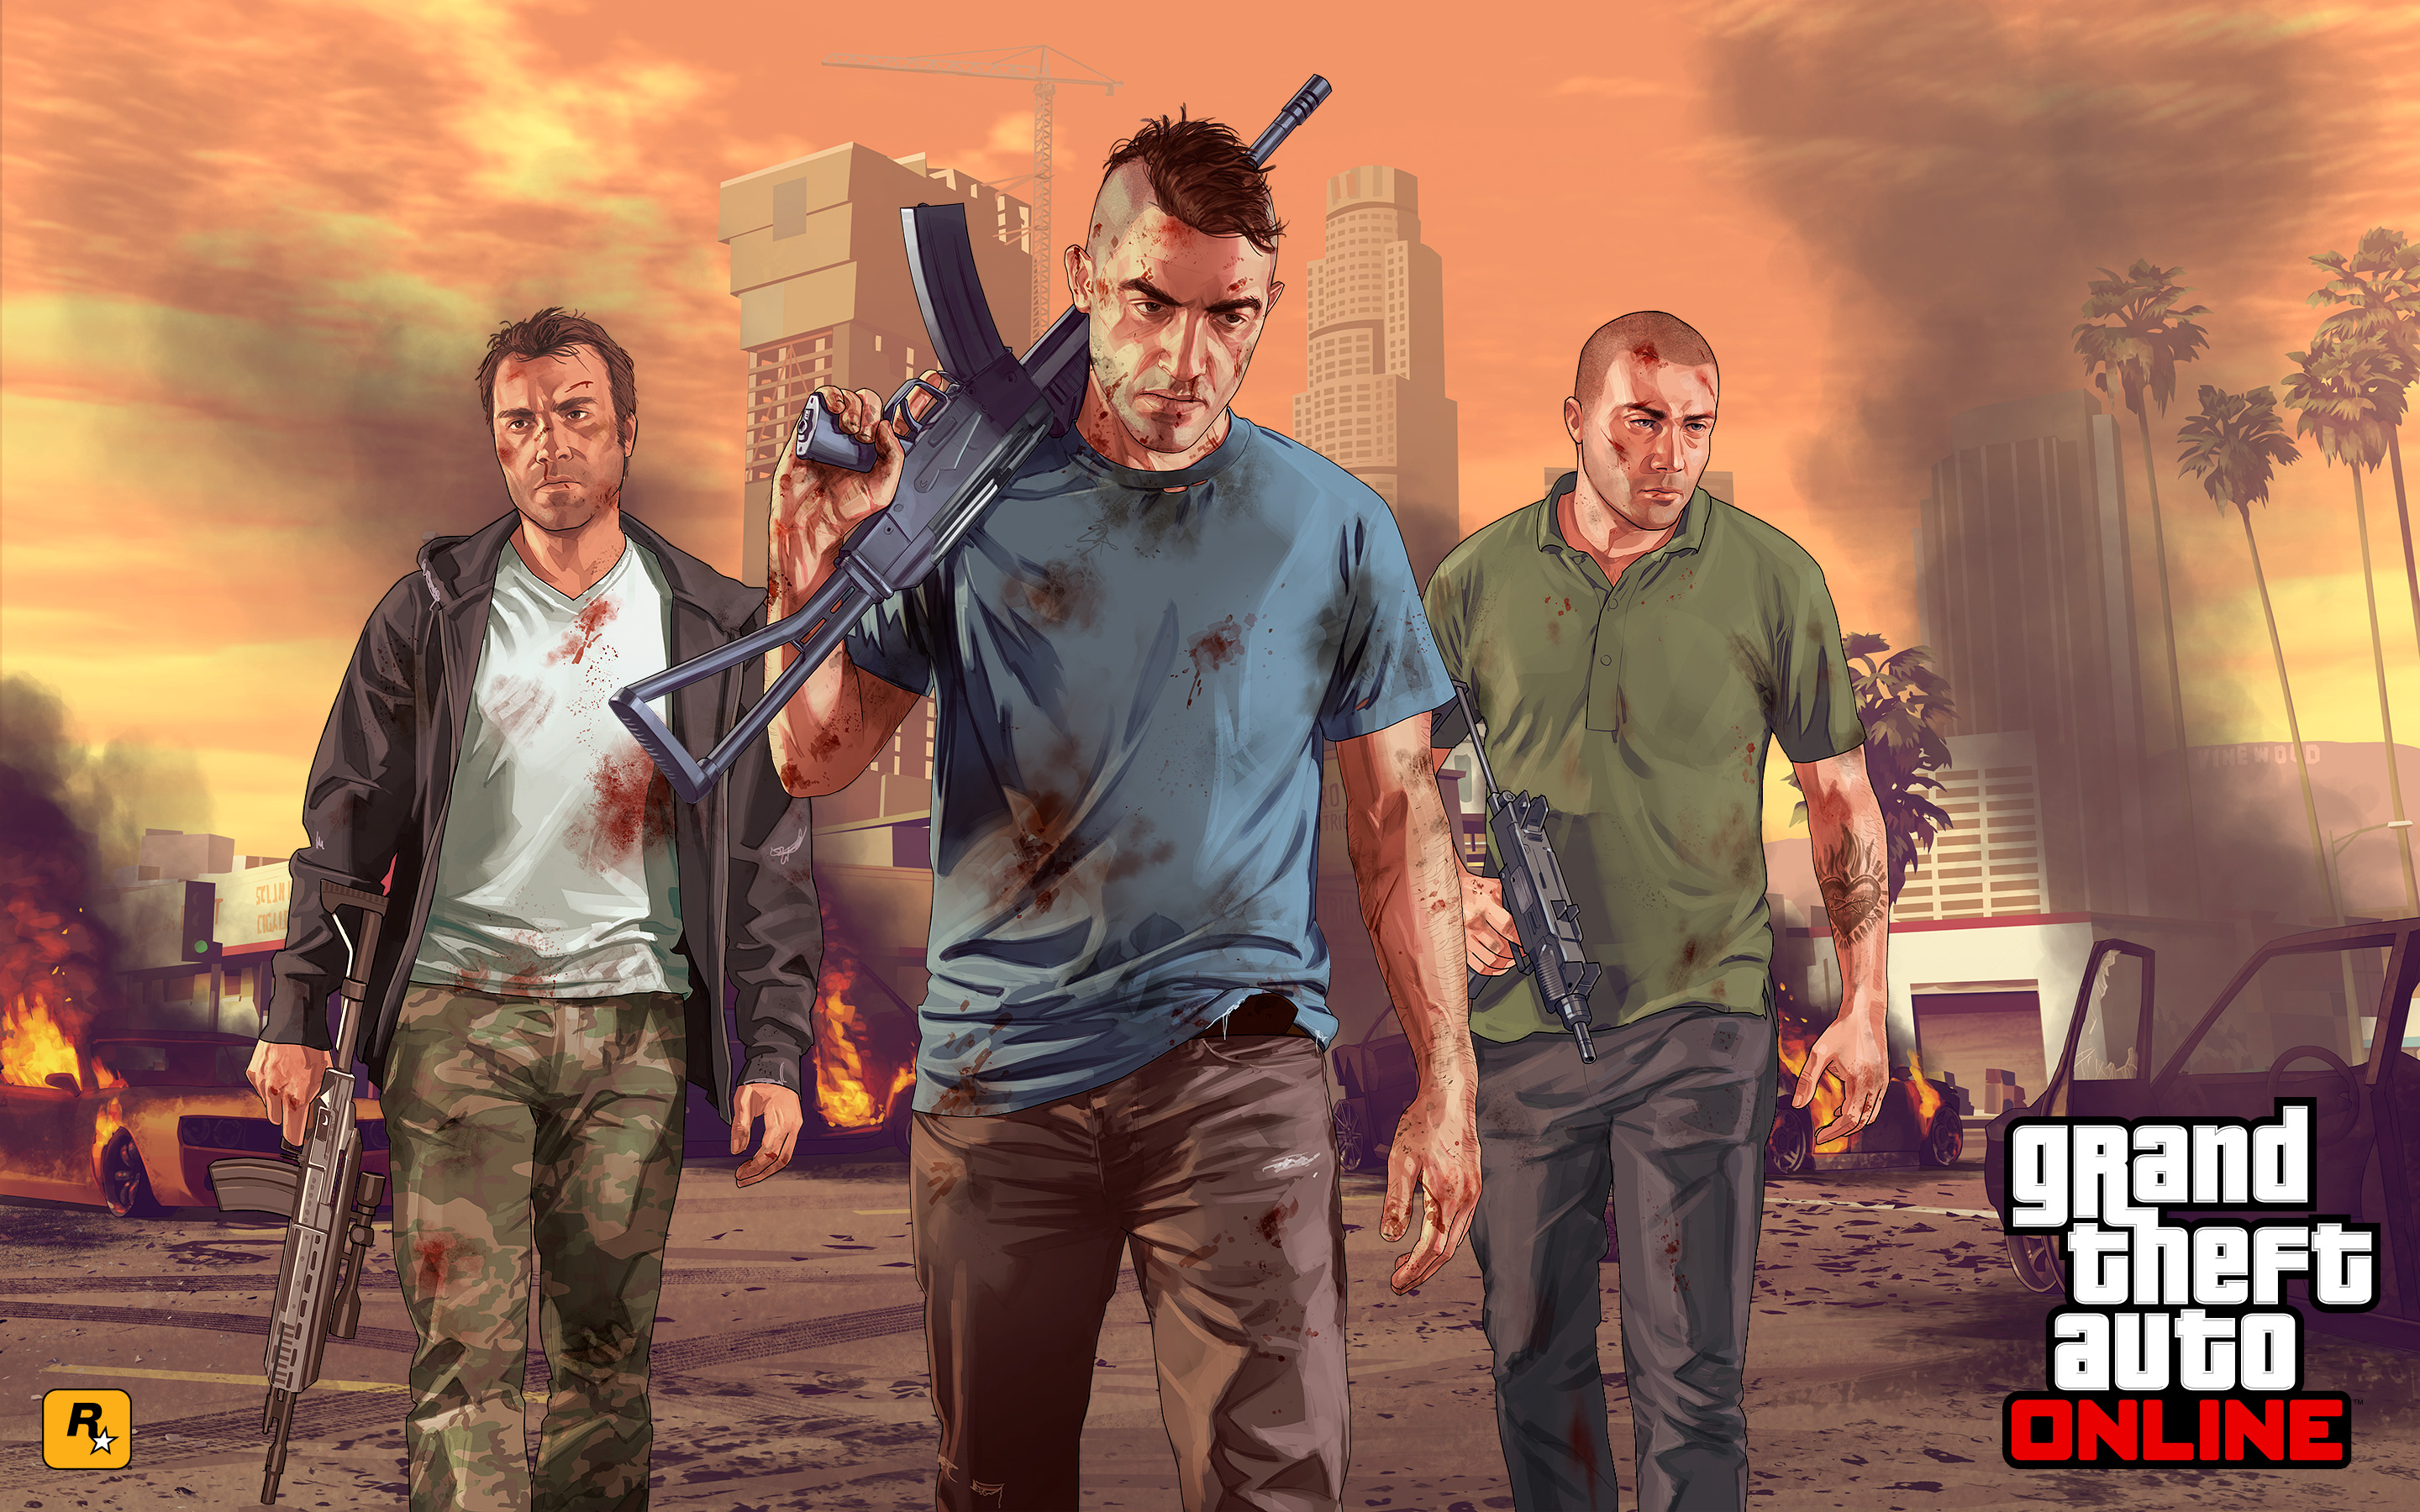 Gta 5 Hd Desktop Wallpapers and Beautiful Images and Top HD Wallpapers 2880x1800